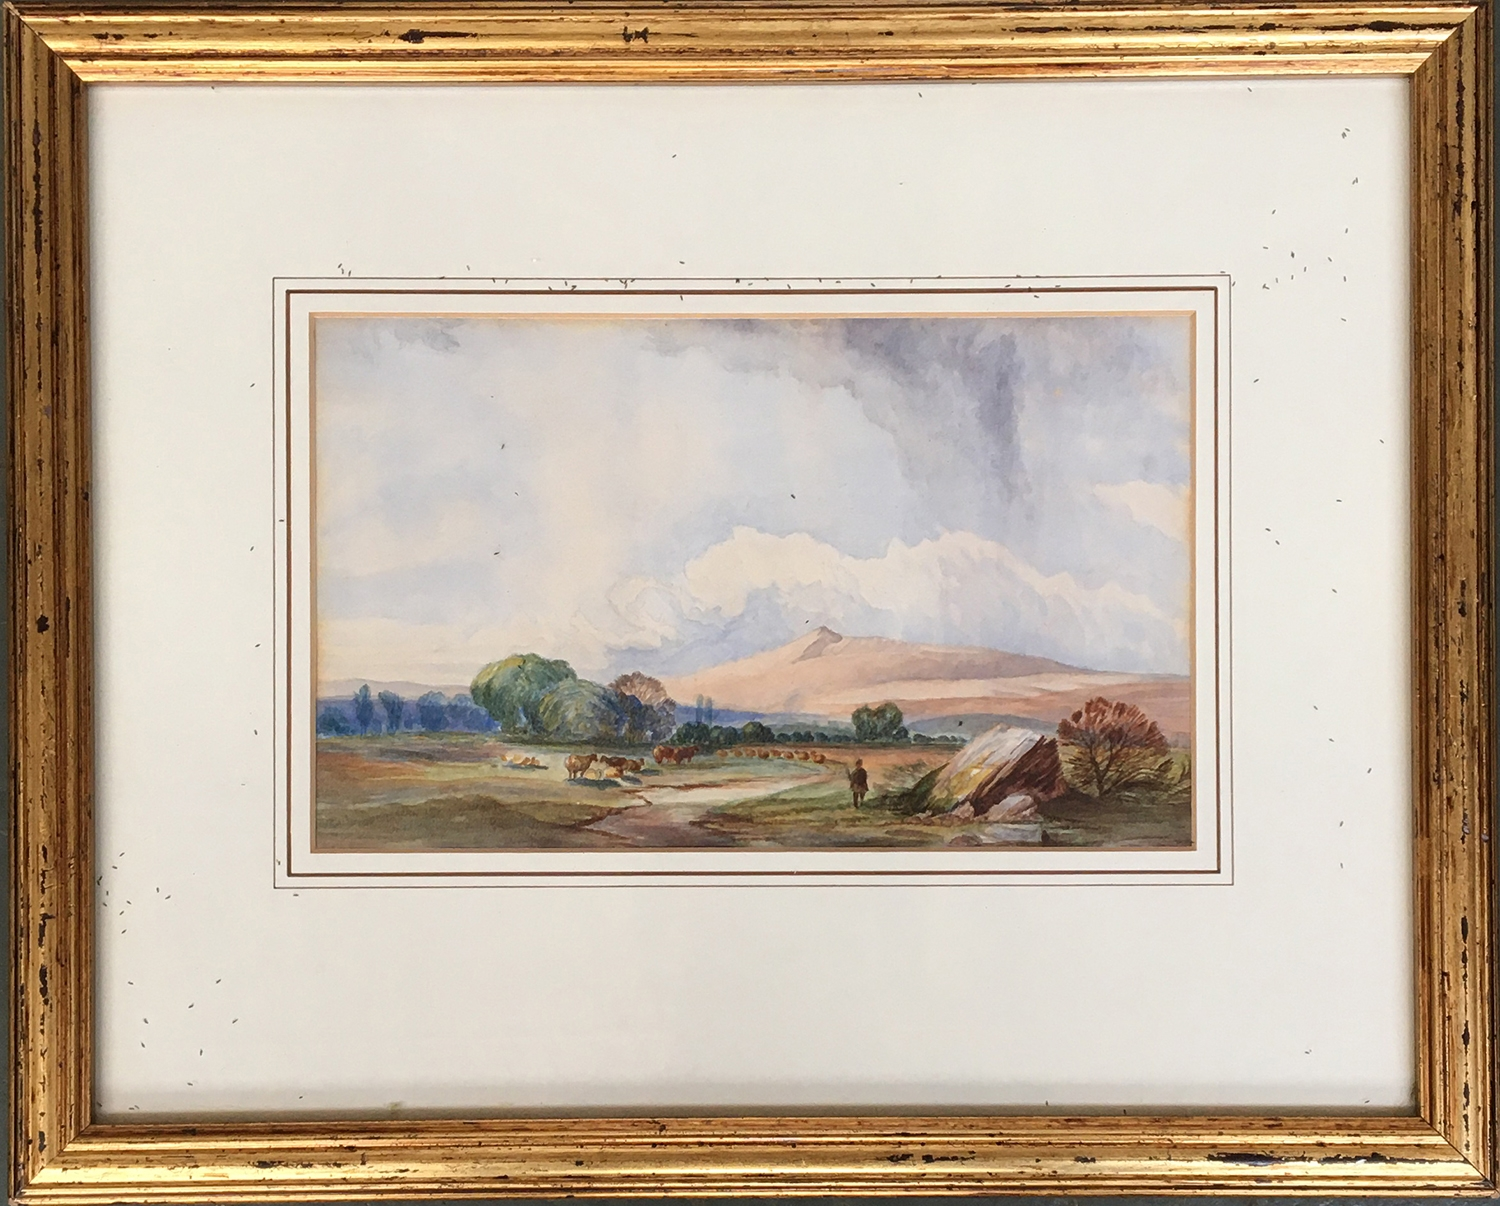 19th century English school, cattle in a landscape, watercolour on paper, 14 x 23.5cm - Image 2 of 2